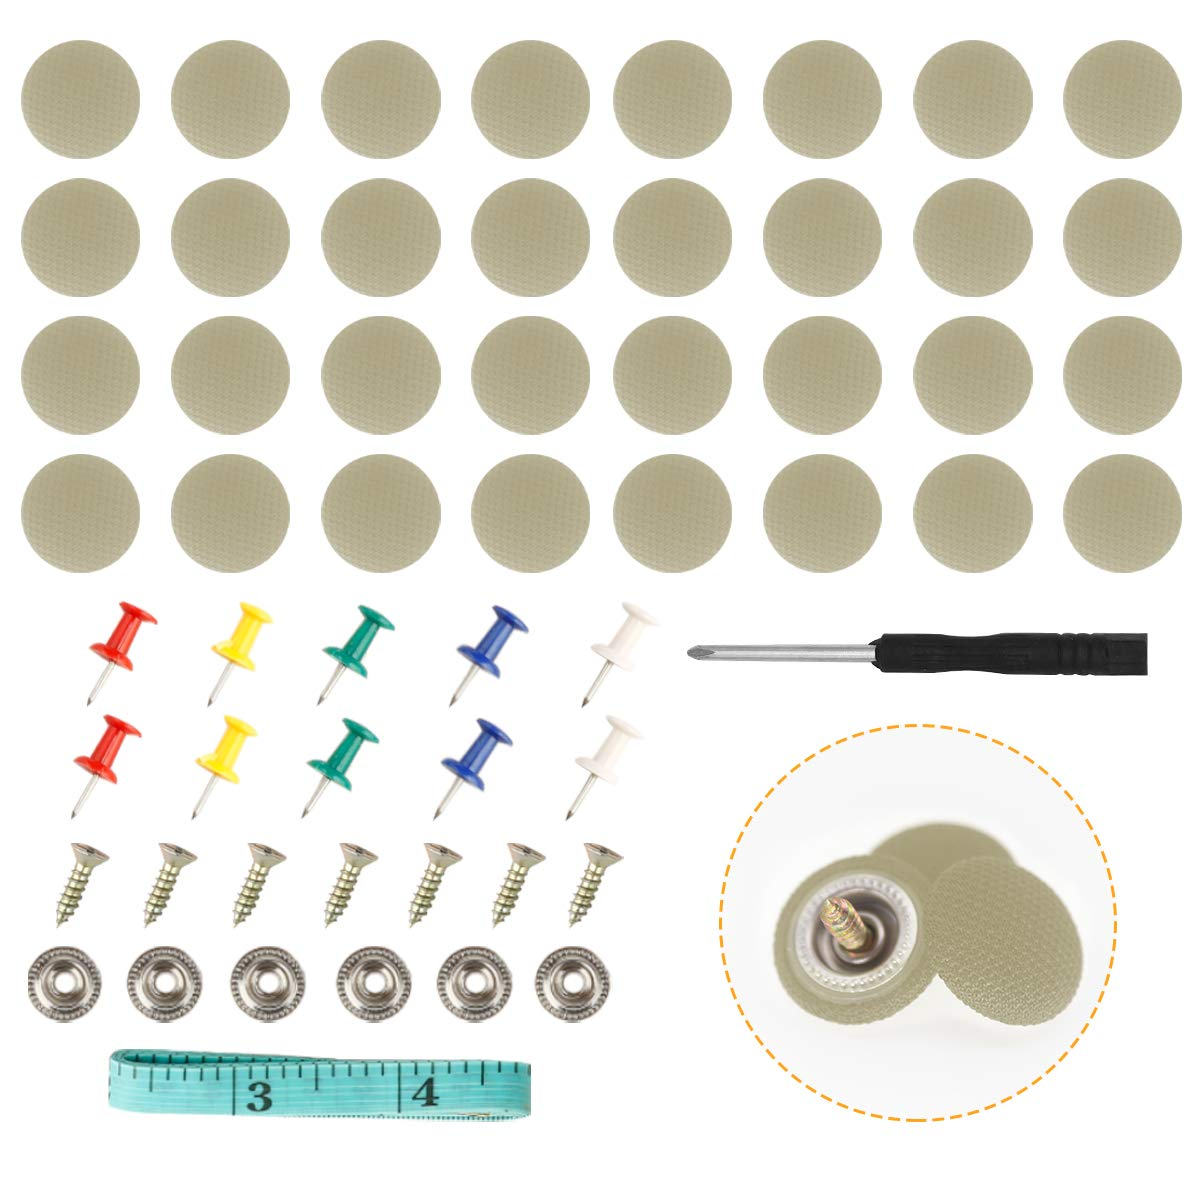 KUFUNG 60PCS Car Roof Headliner Repair Kit, Auto Roof Snap Pins Retainer Design for Car Roof Flannelette Fixed, with Installation Tool and Fit Truck, SUV, UV, Car (Grey Beige Grid)